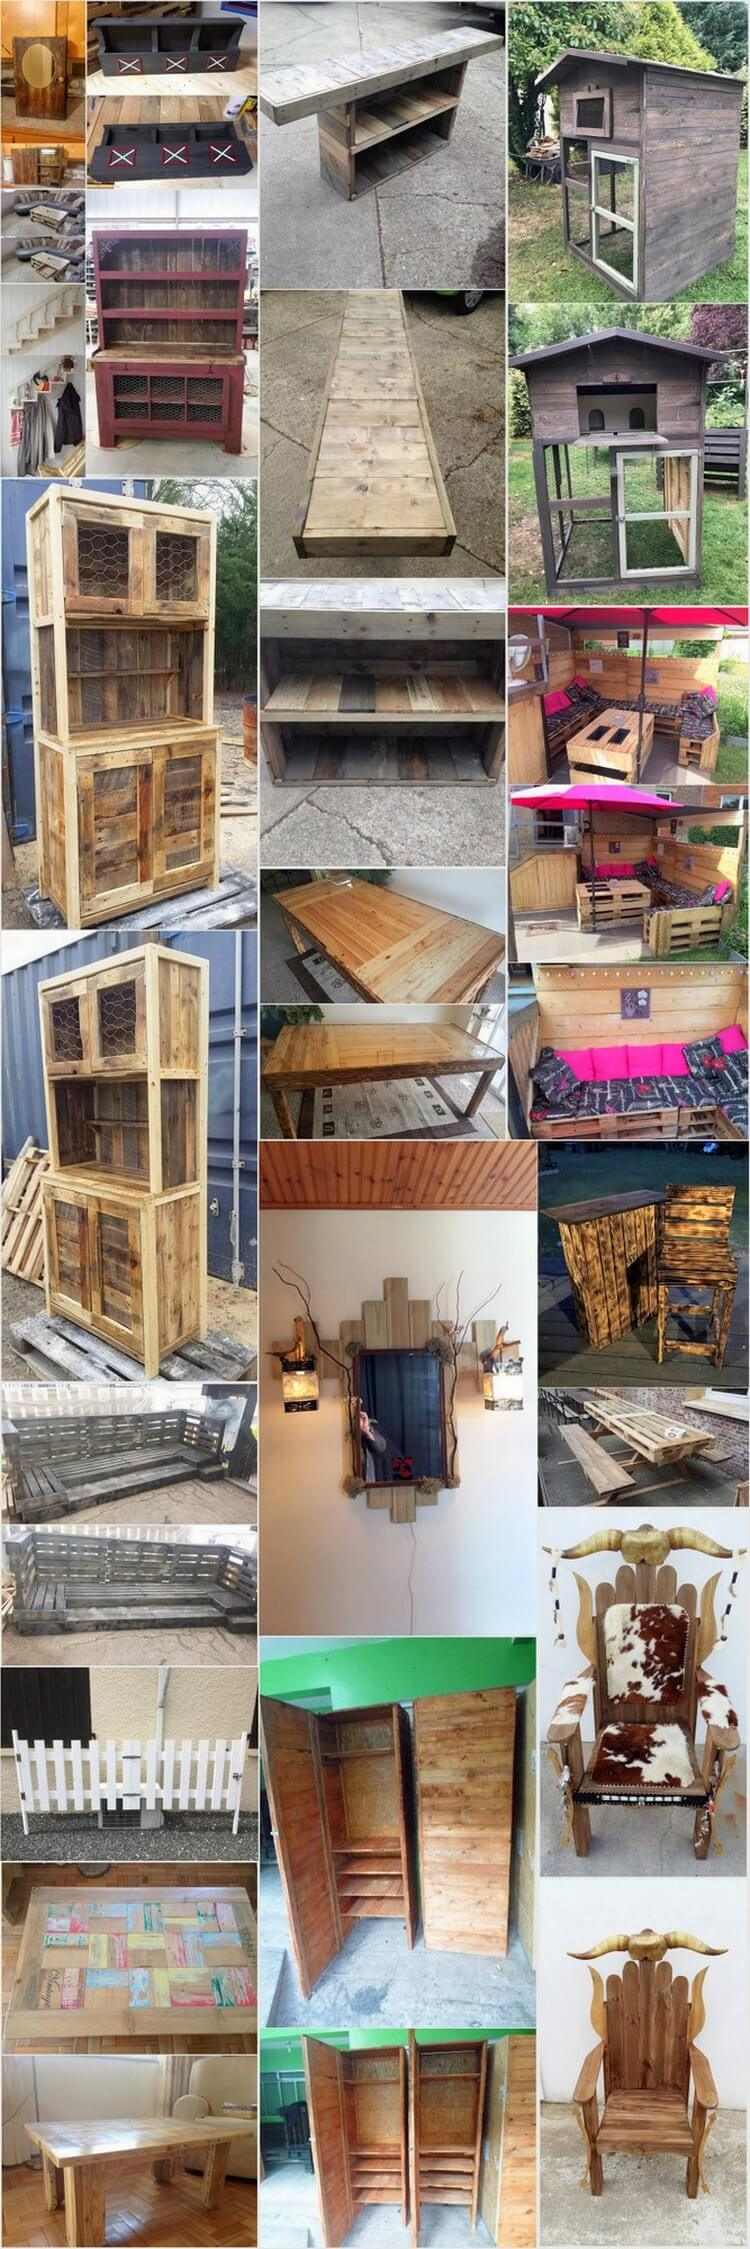 Amazing Creations with Recycled Wood Pallets